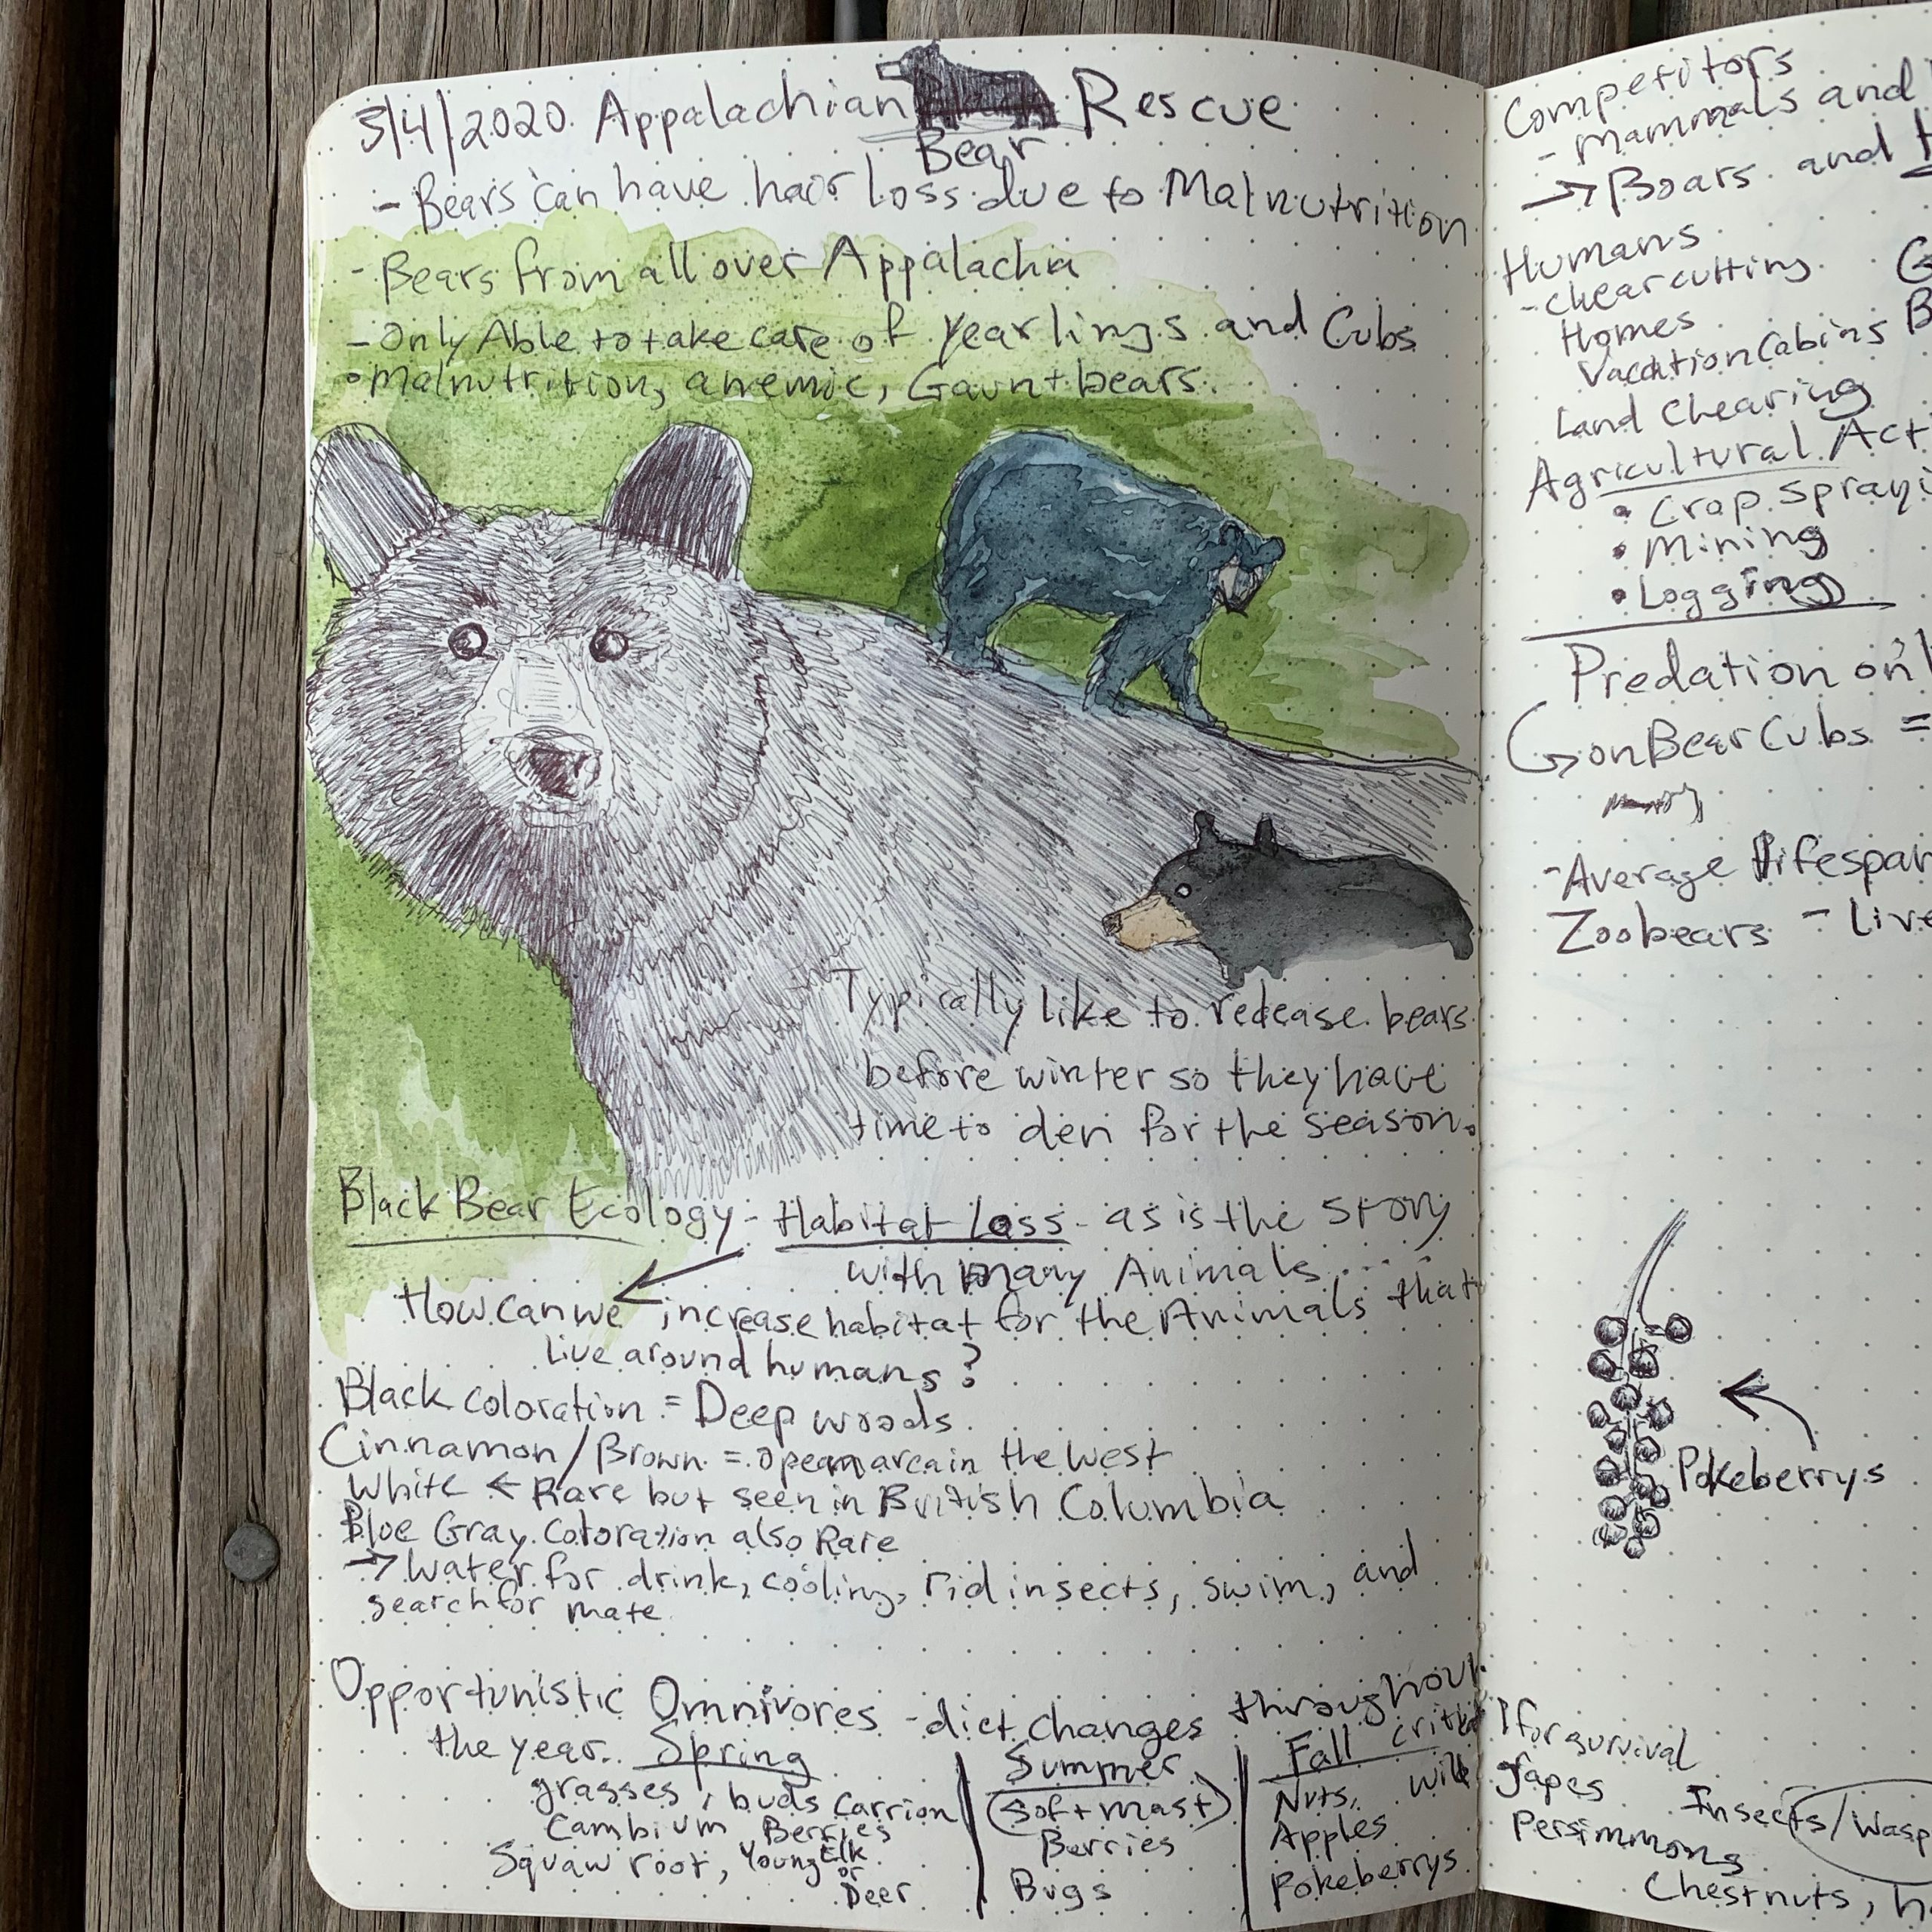 A nature journal page about Appalachian Bear Rescue